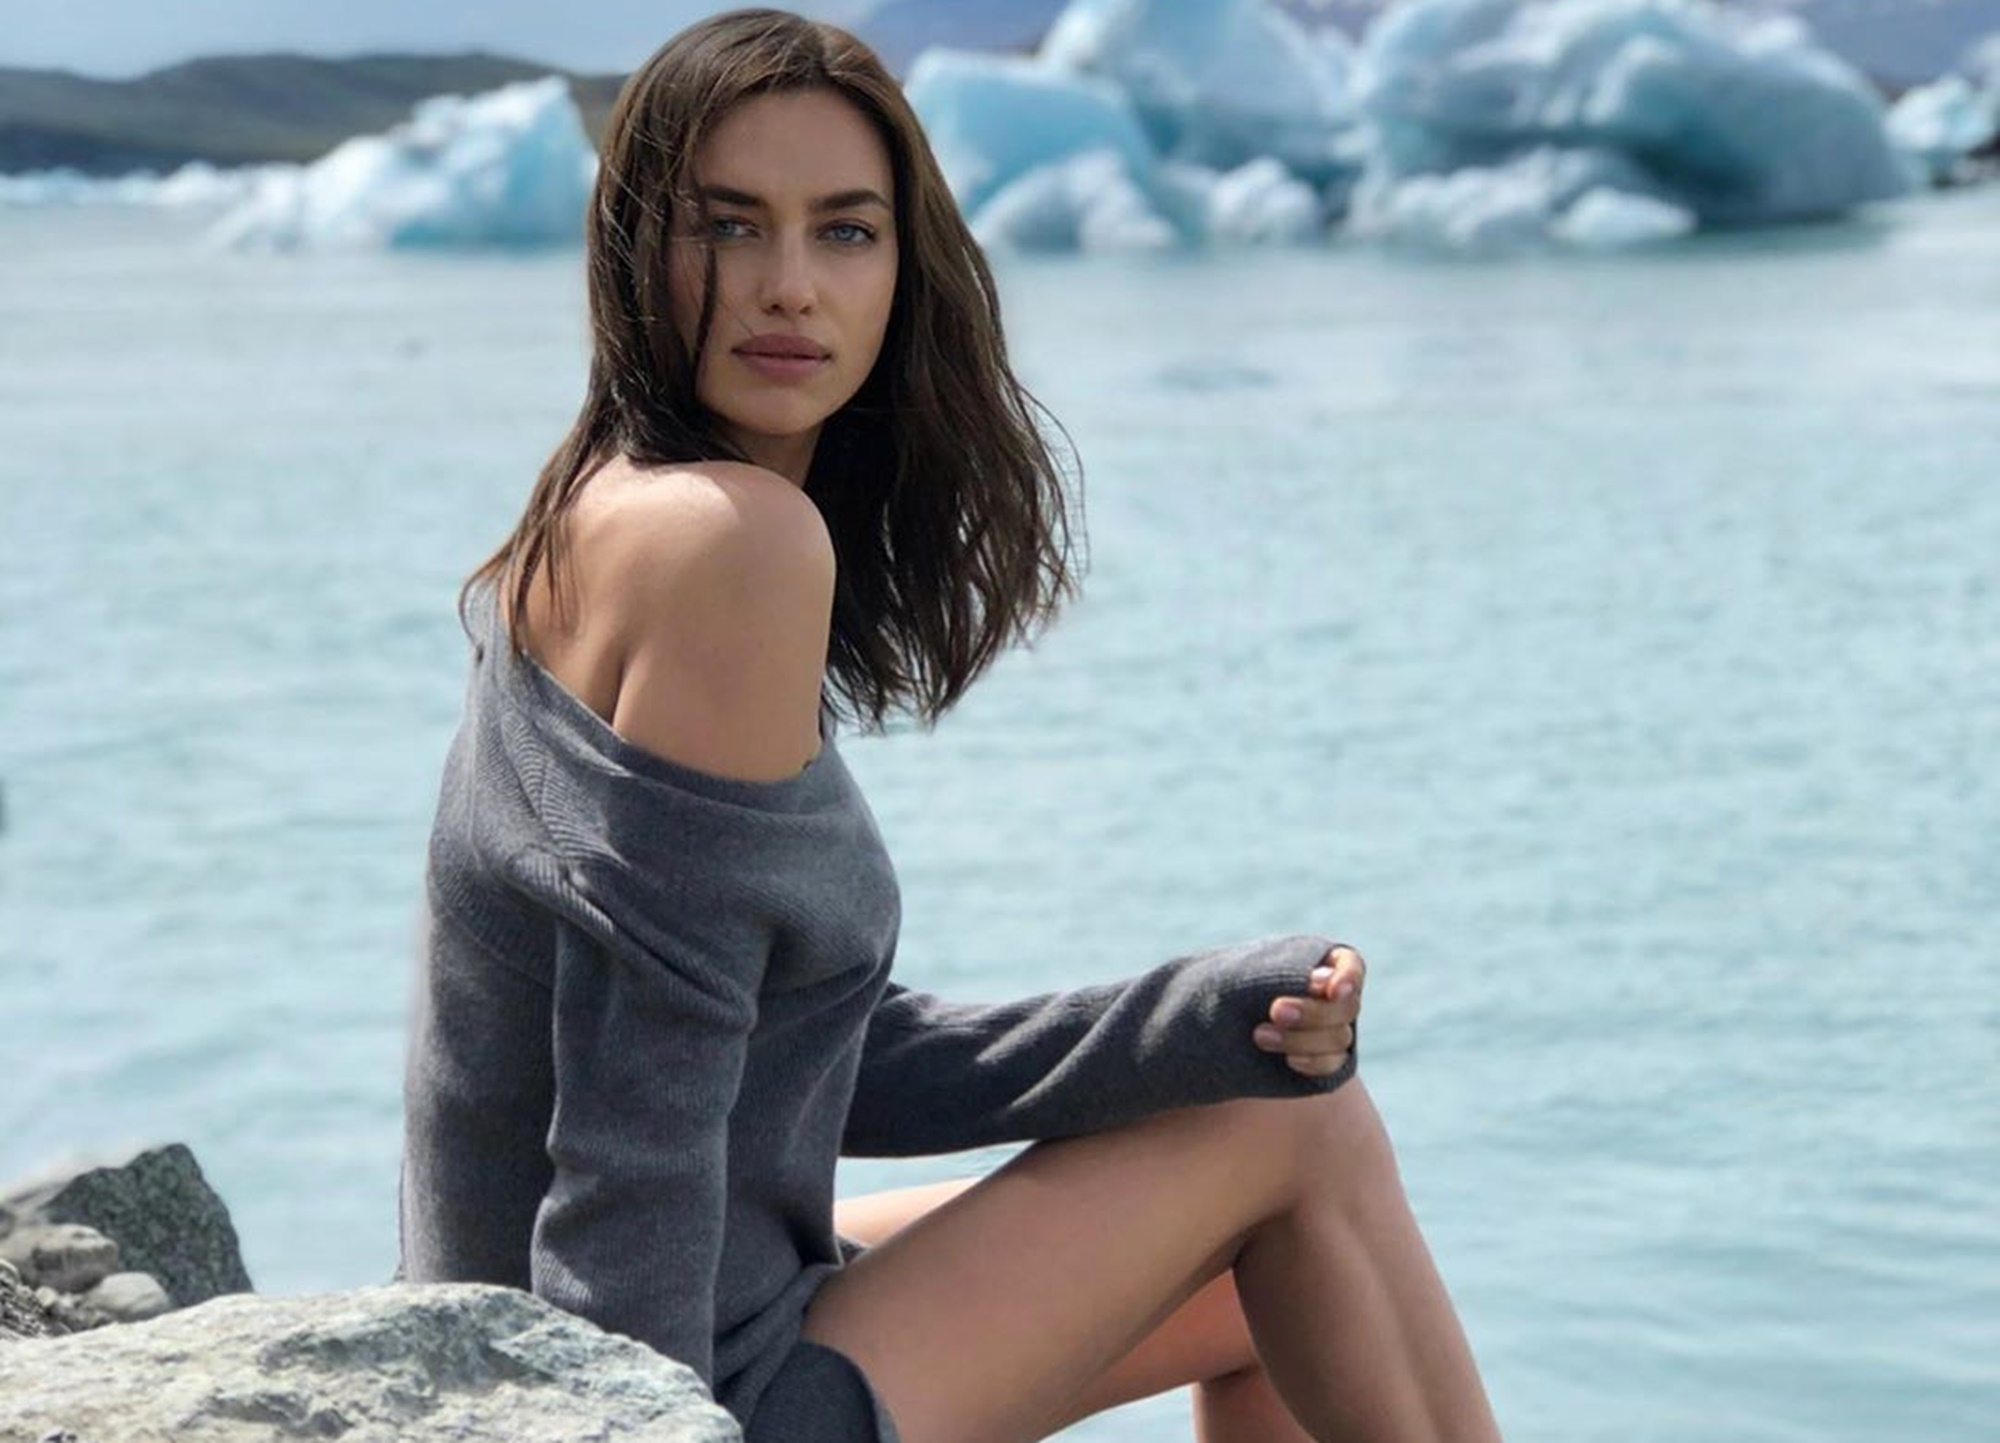 """irina-shayk-shows-bradley-cooper-what-he-is-missing-with-new-picture-in-tiny-bathing-suit-picture-where-she-leaves-nothing-to-the-imagination"""